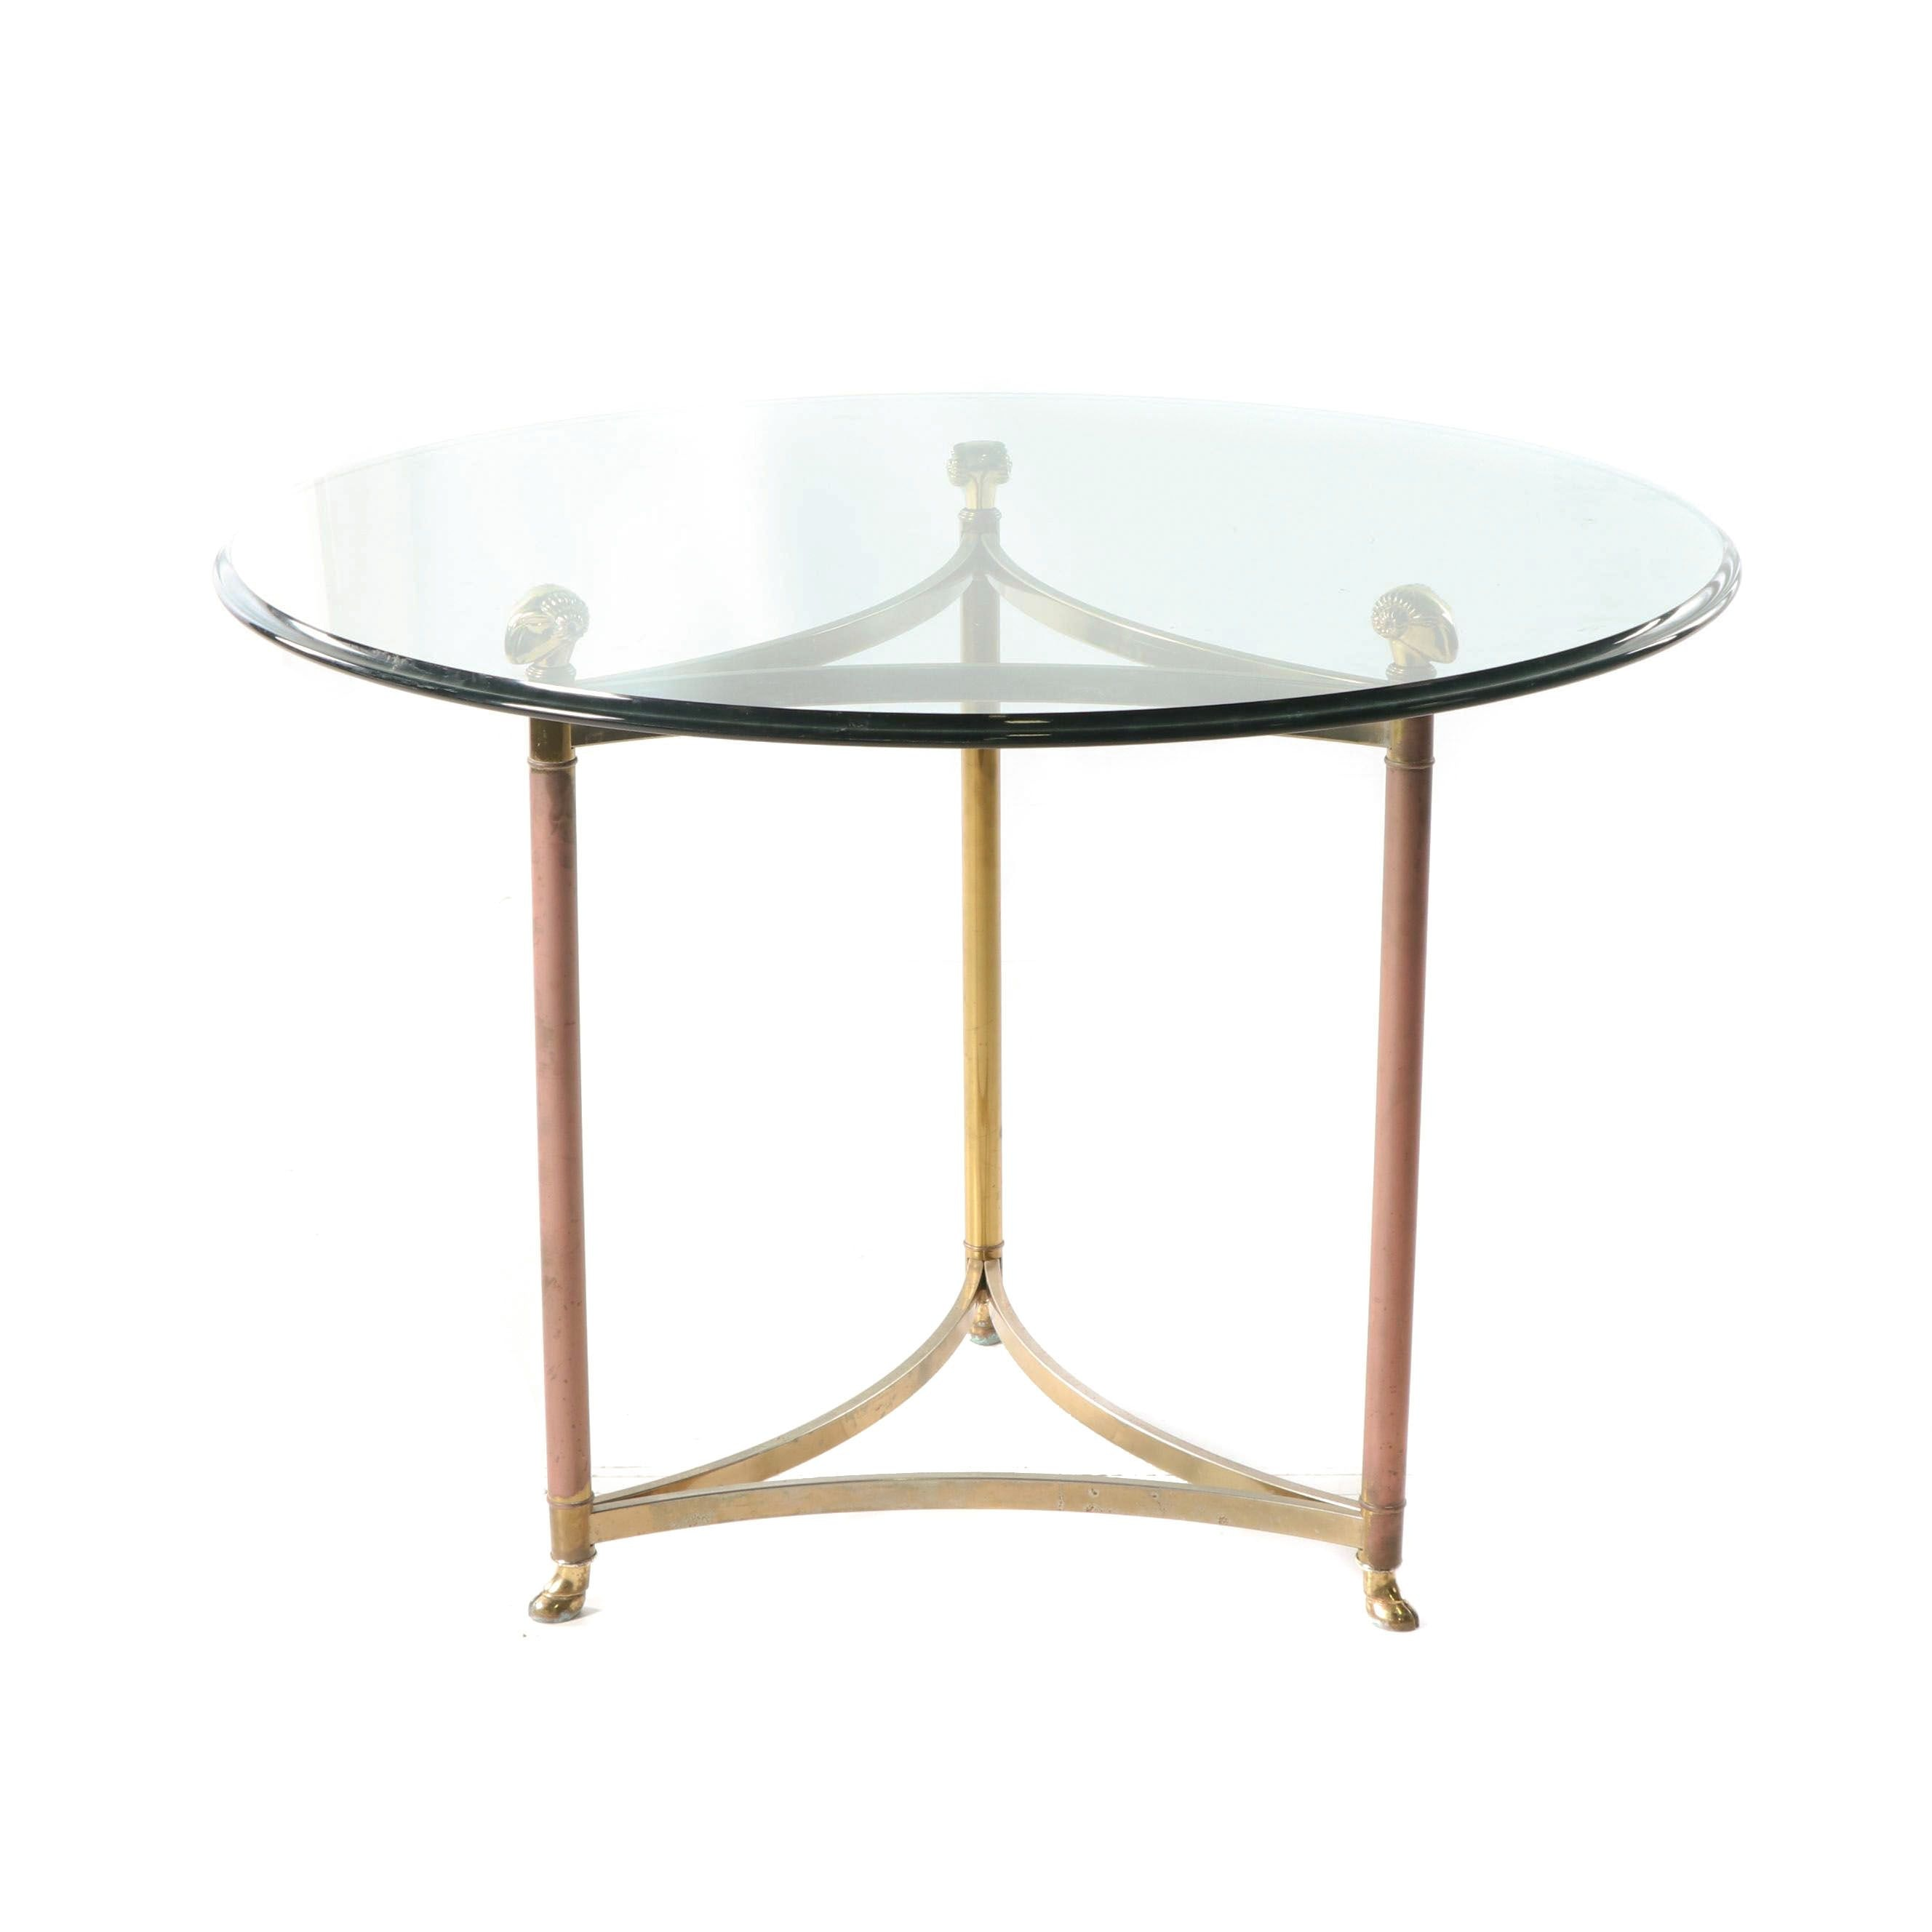 Regency Style Goat Motif Brass and Glass Dinette Table, 20th Century